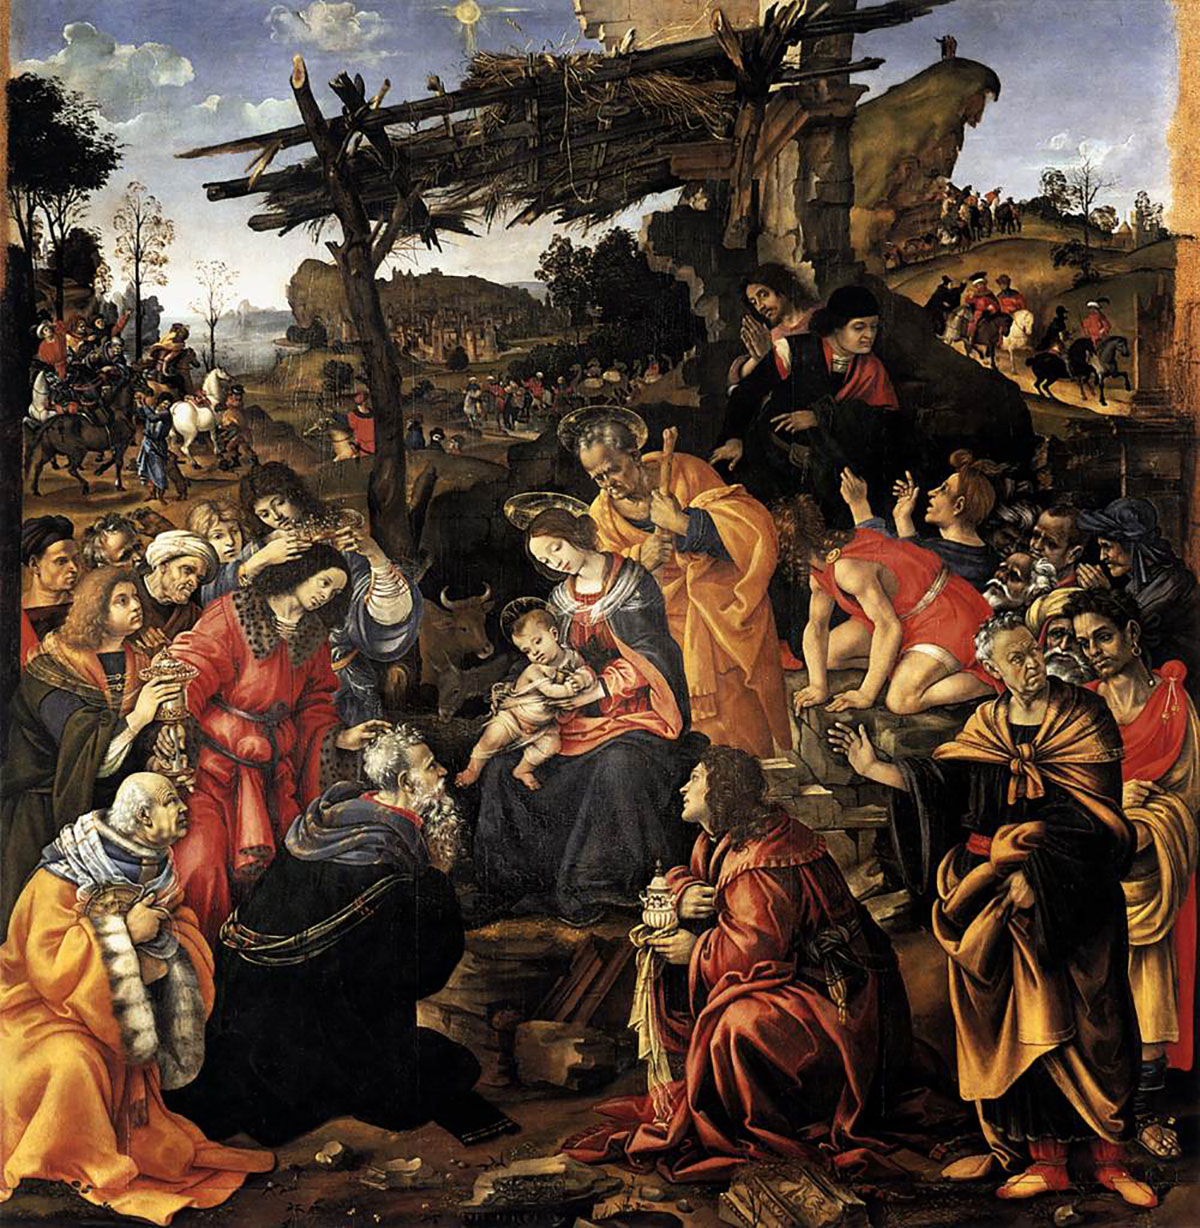 Filippino Lippi: Adoration of the Magi in the Uffizi Gallery